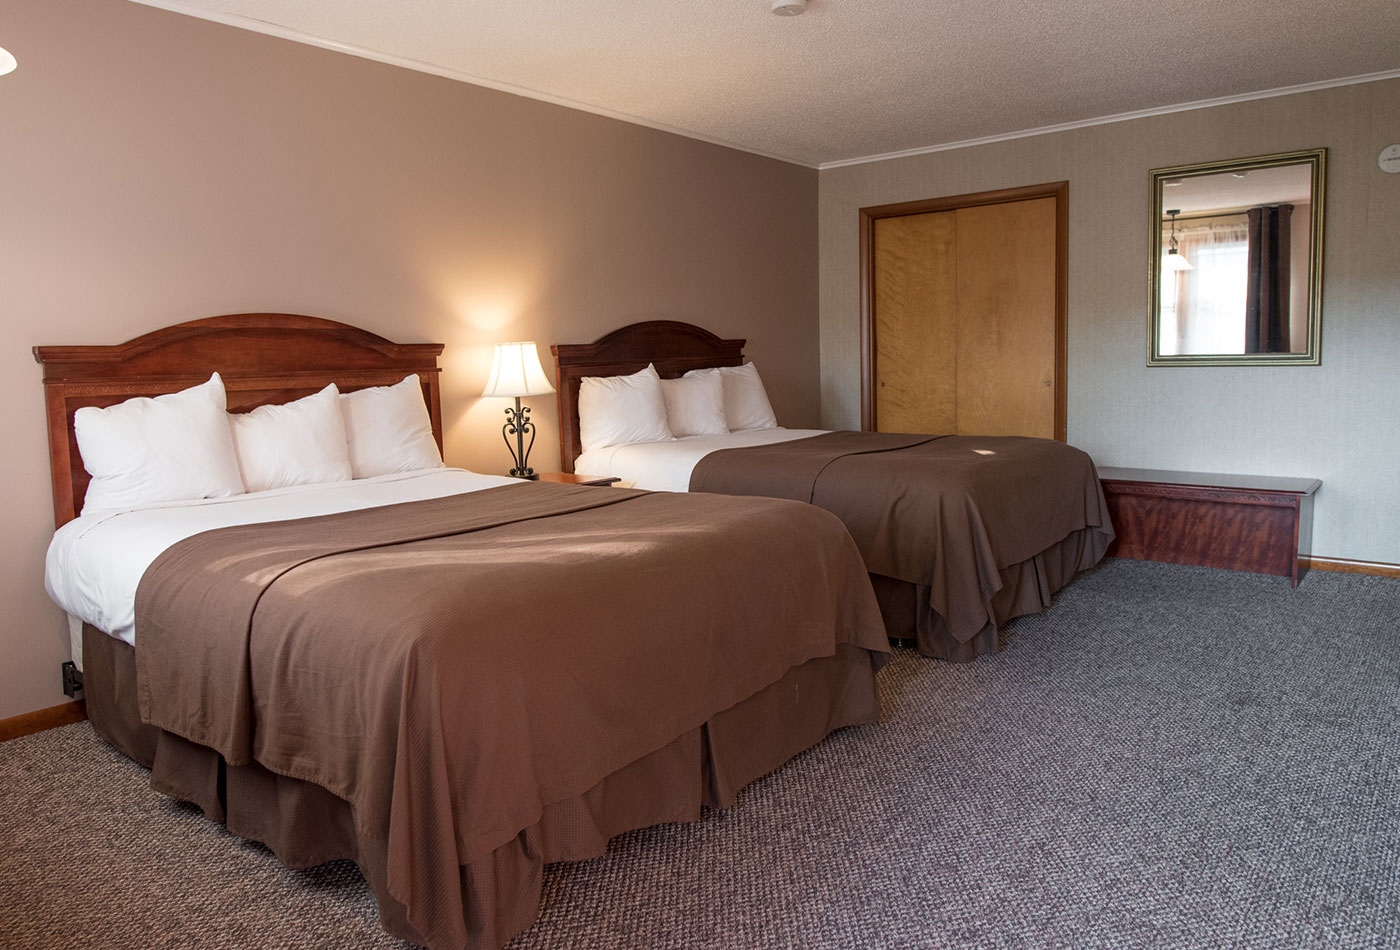 Lake George Double Queen Guest Room with beach access at Dunham's Bay Resort